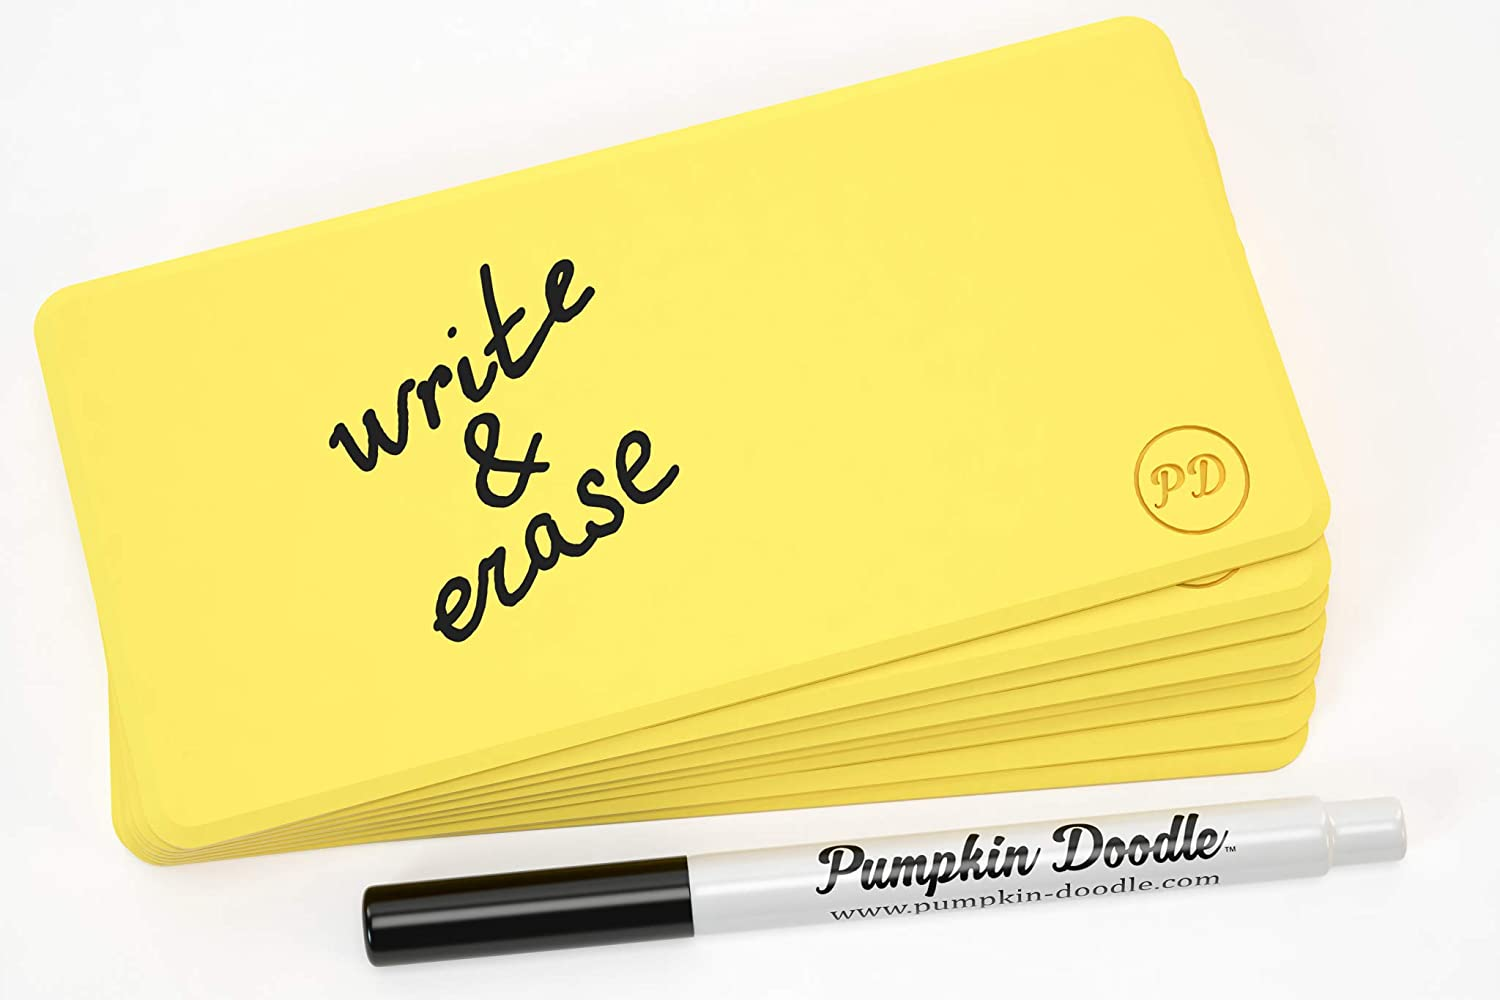 Pumpkin Doodle - Write and Reuse Sticky Labels (Yellow)